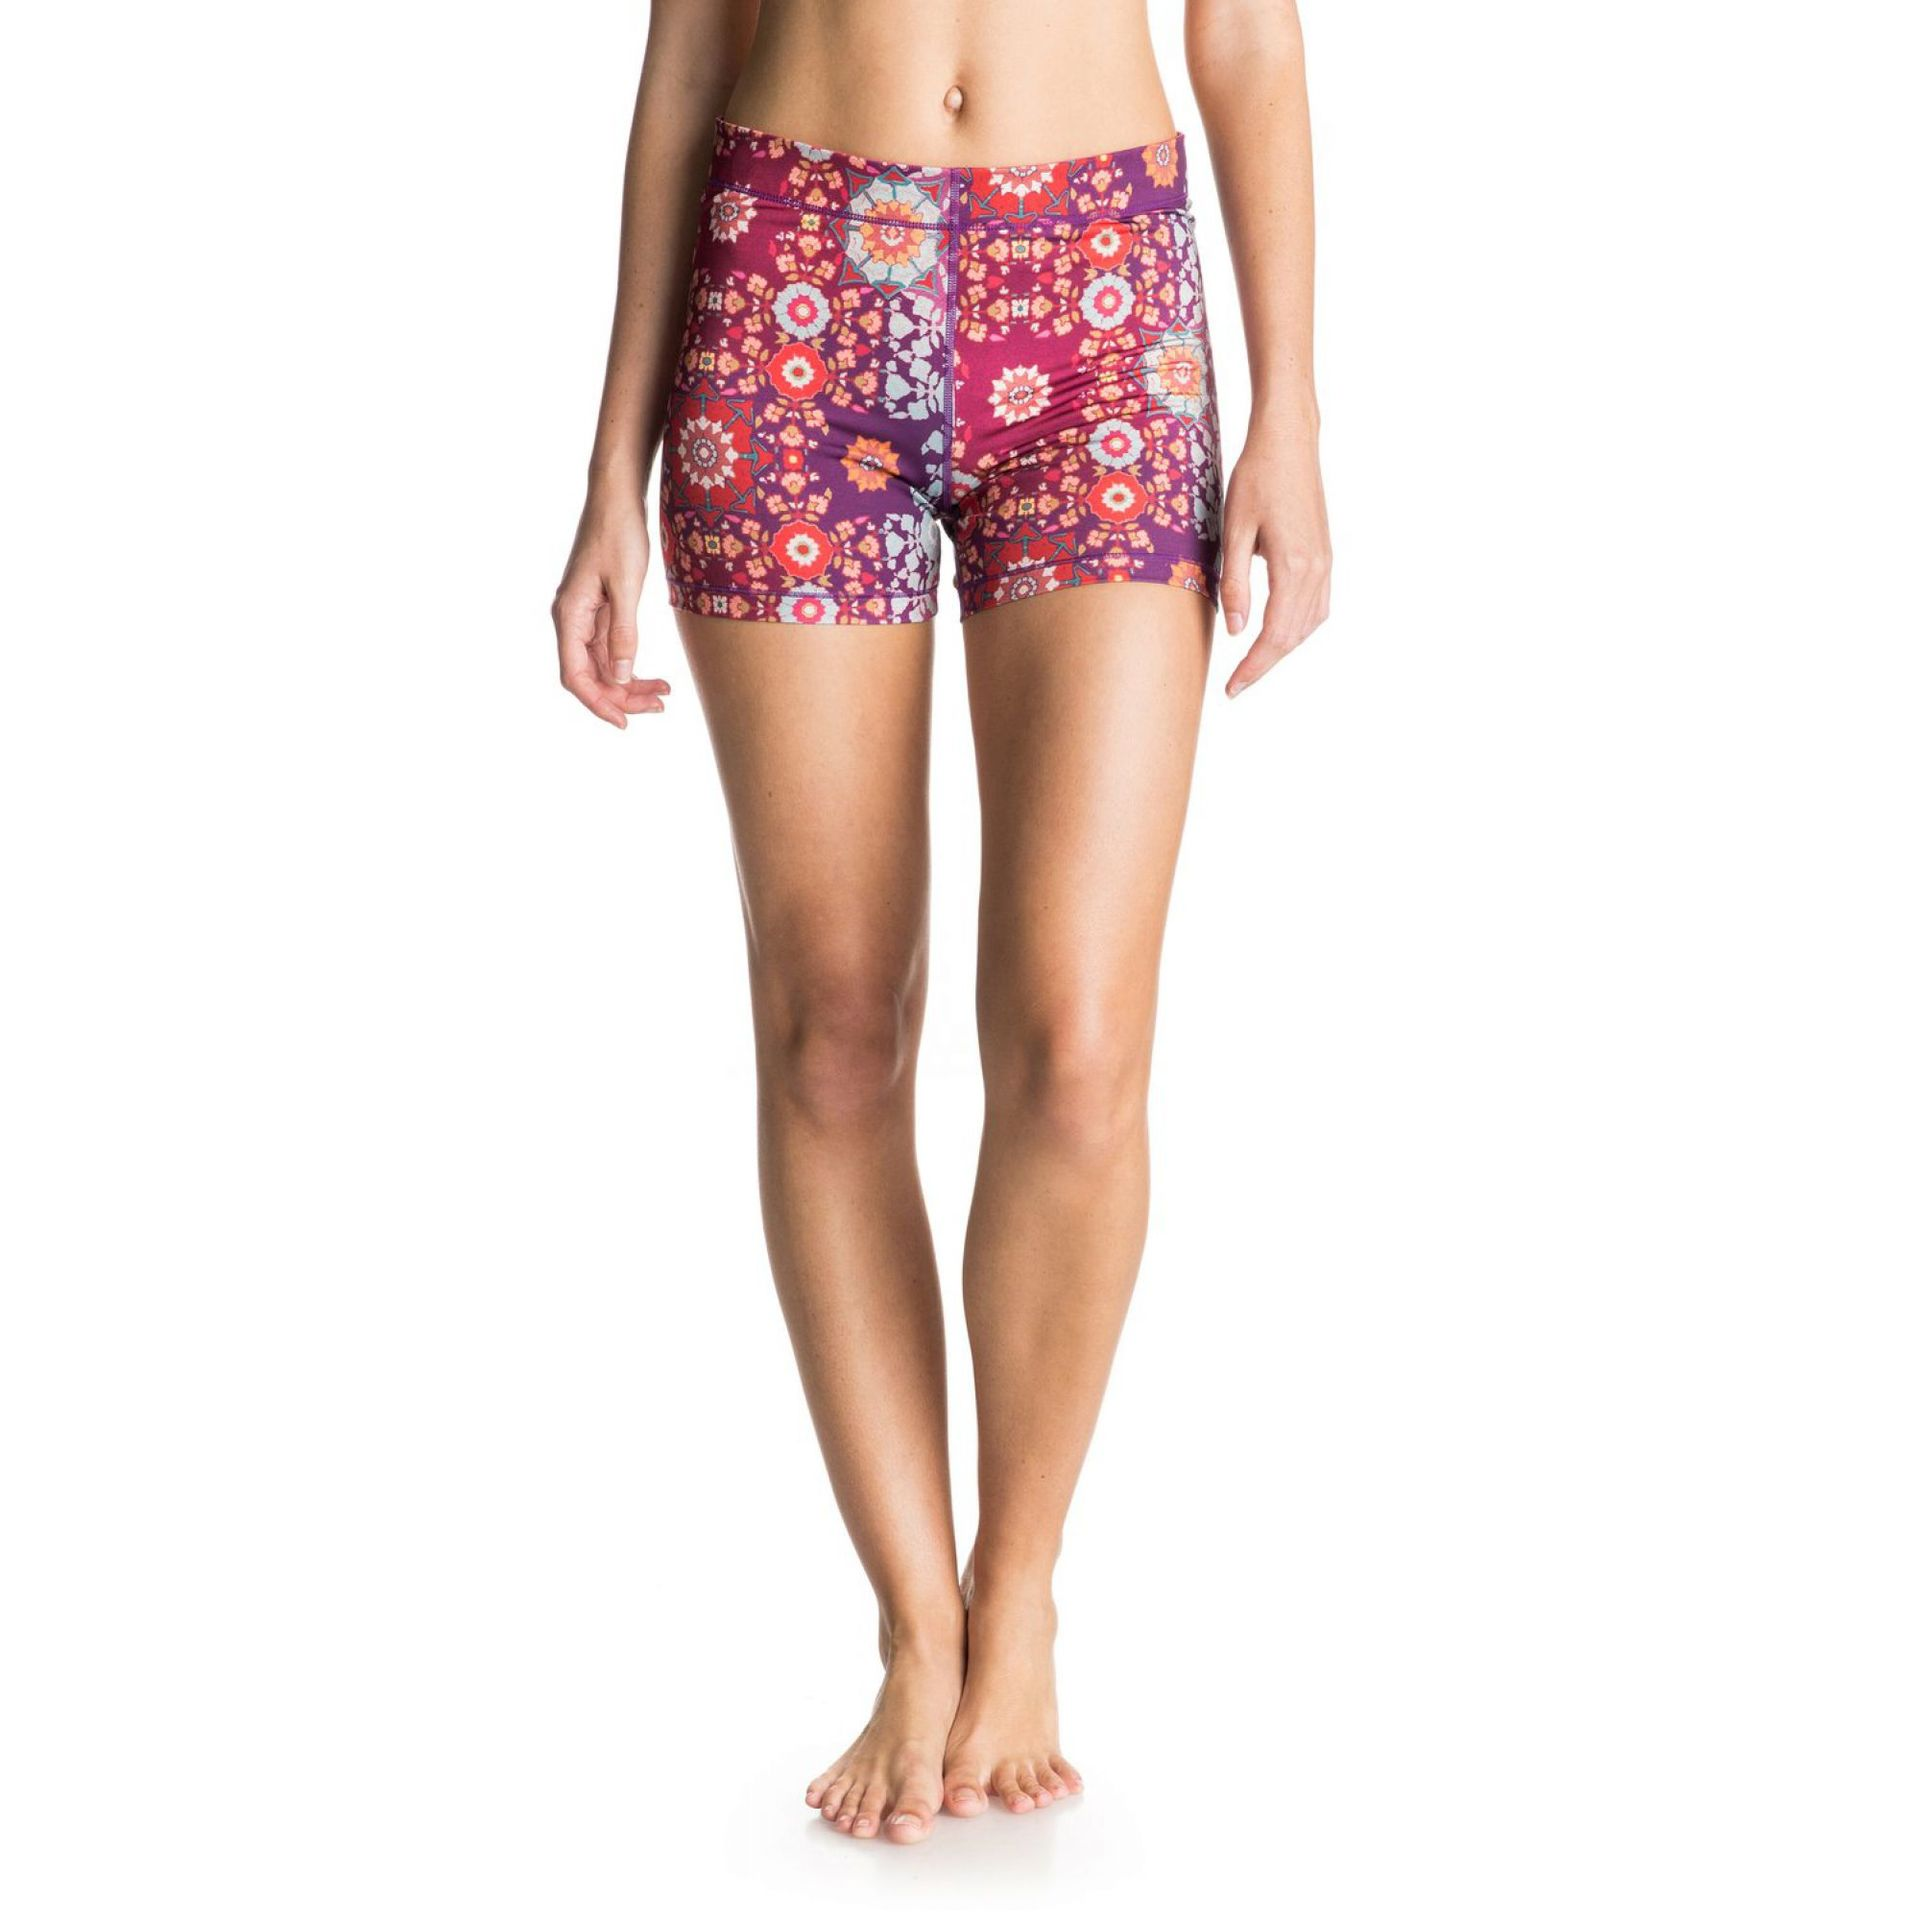 SPODENKI ROXY SPIKE FITNESS SHORTS MMN6 3